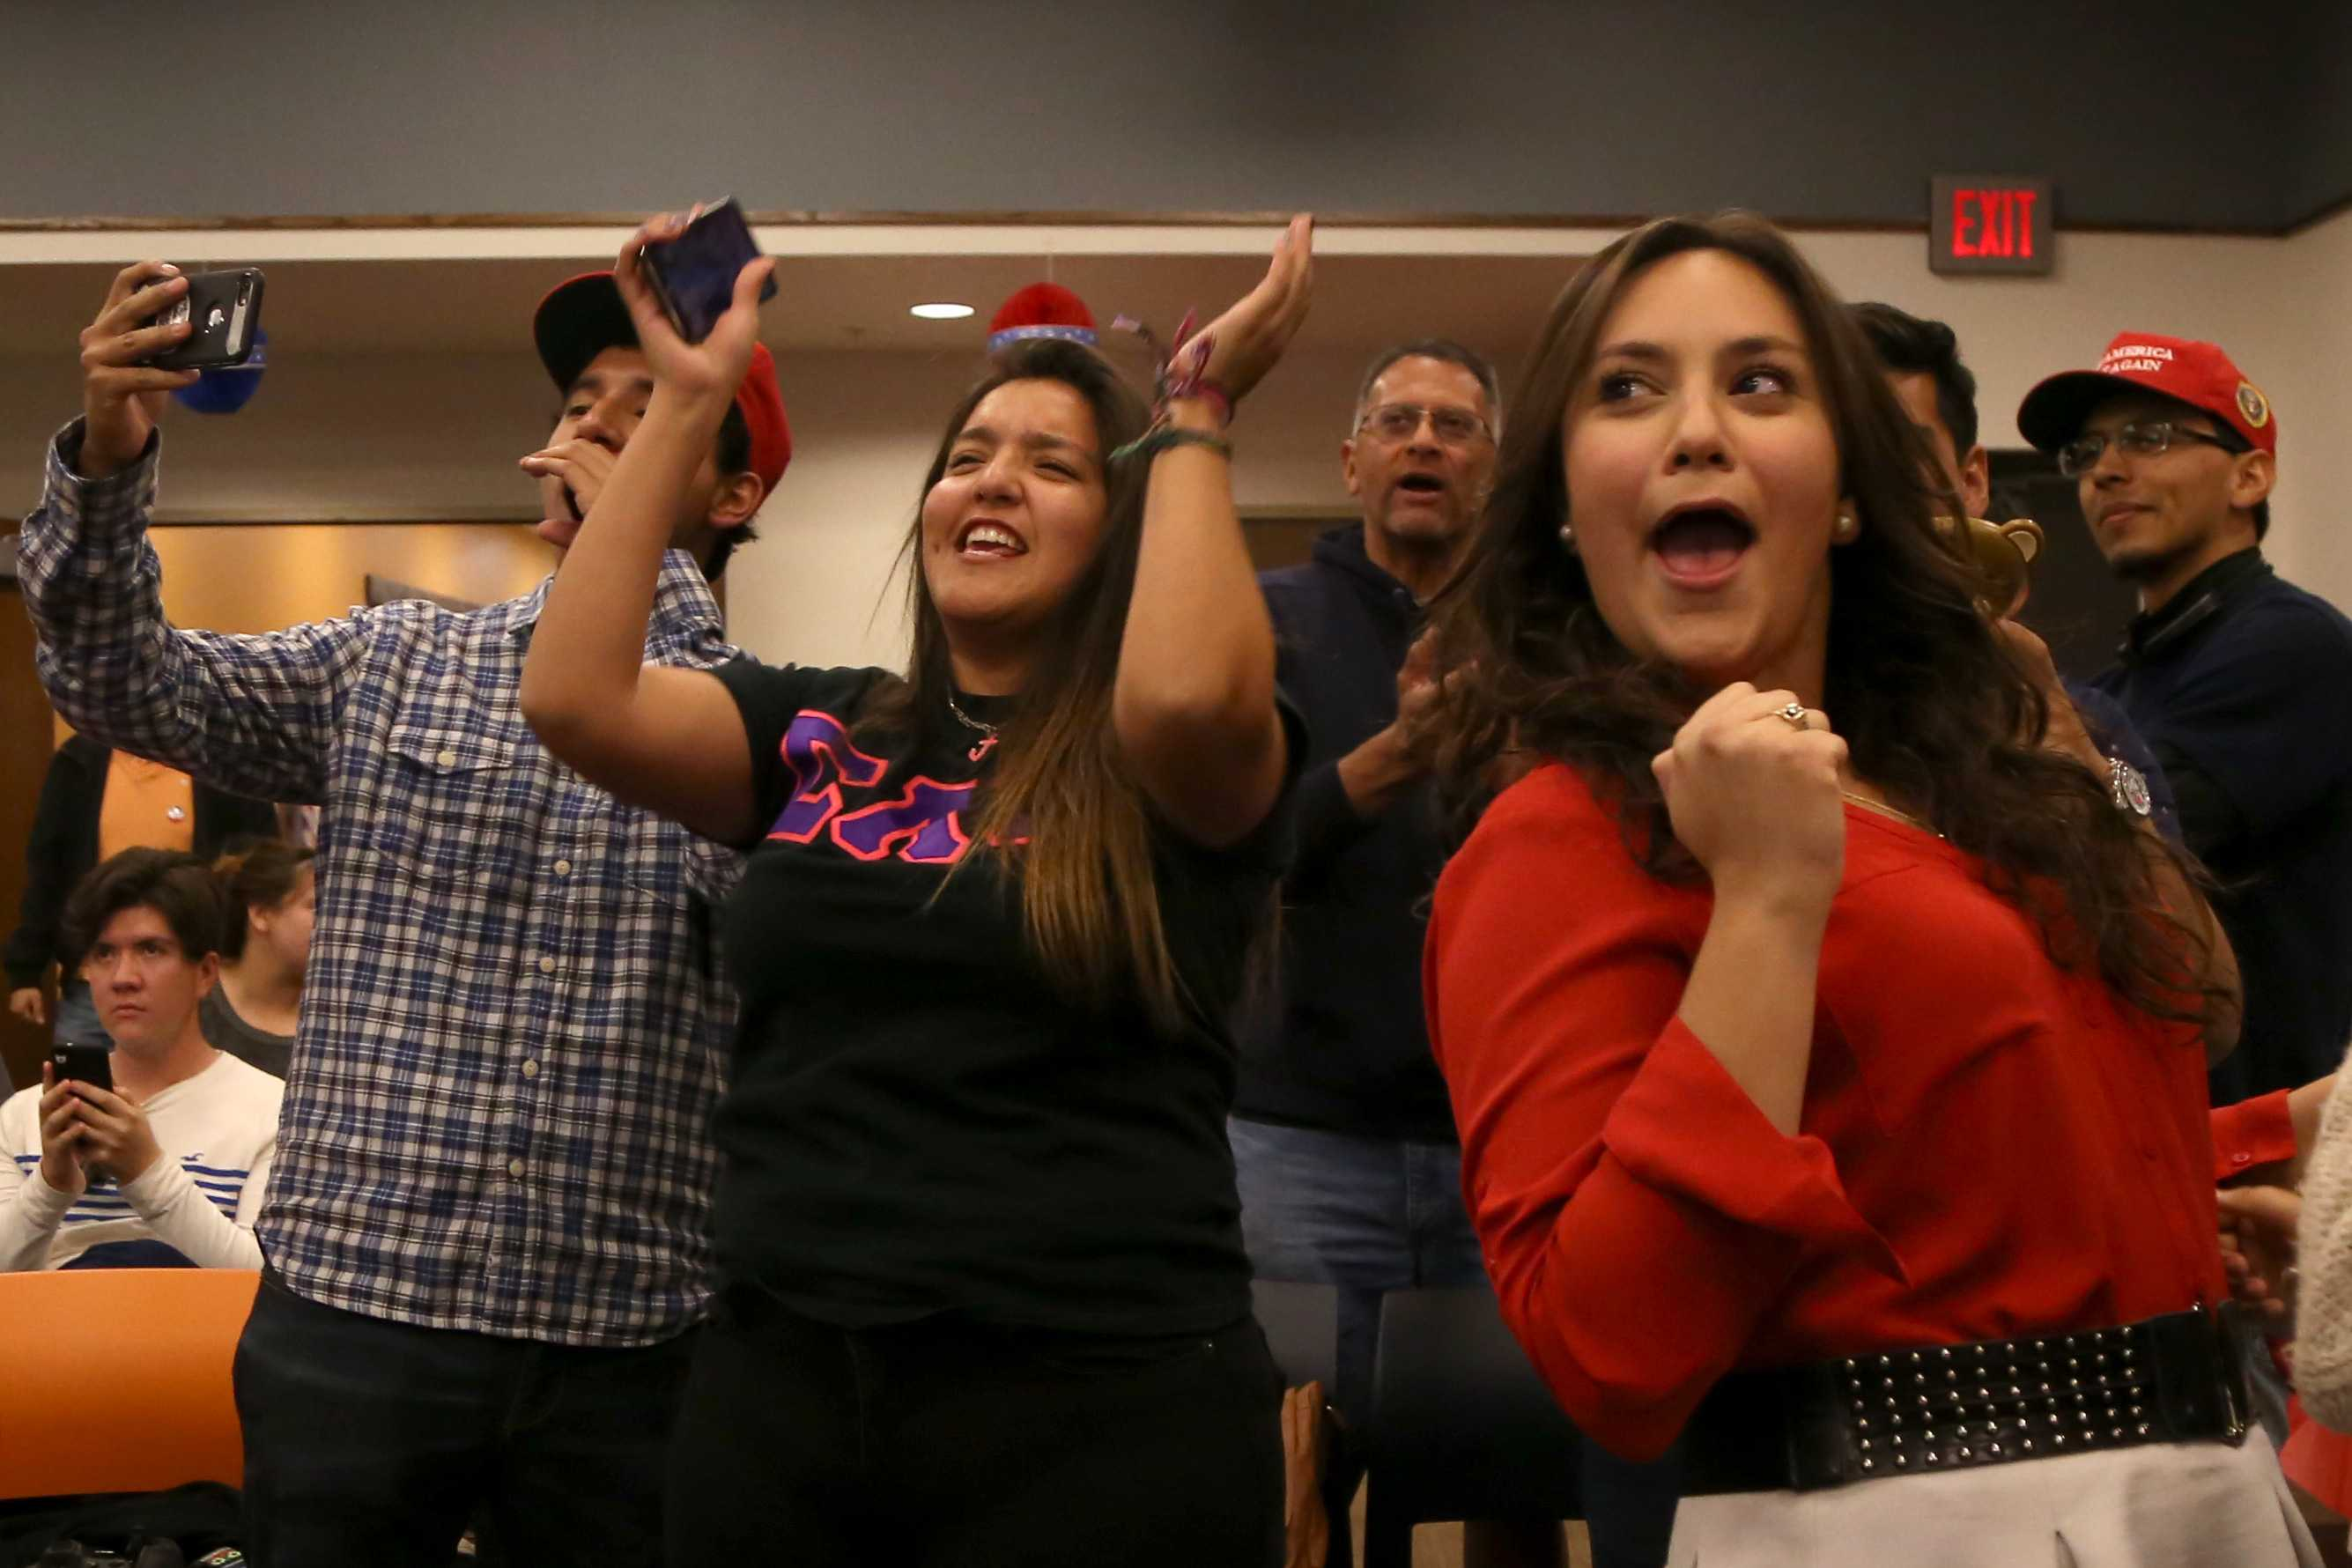 Members of the UTEP College Republicans cheer after hearing CNN projections of Trump ahead in the polls.